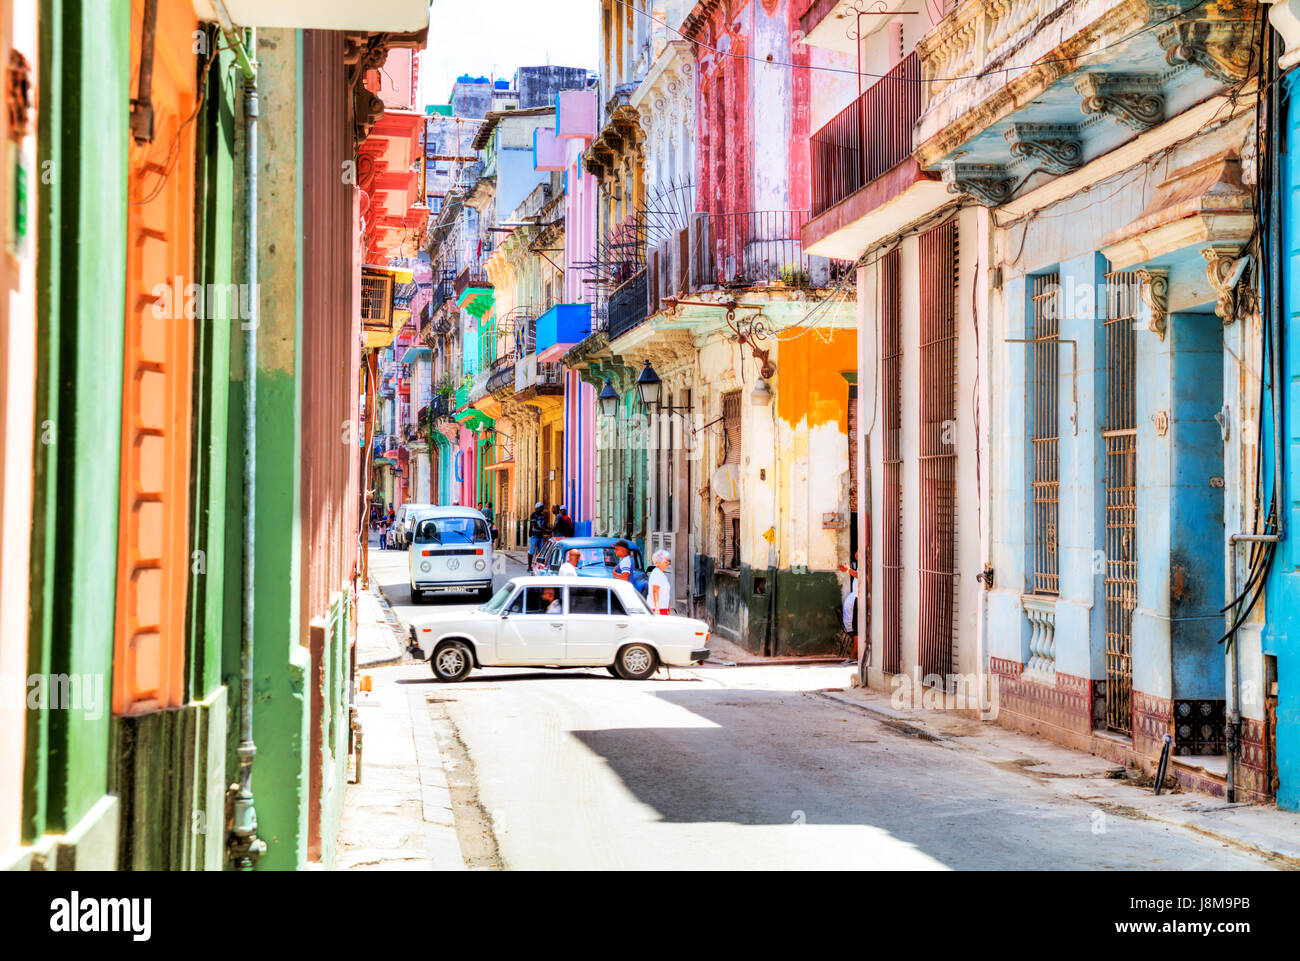 Colourful buildings on street in havana city cuba cuban homes colourful buildings on street in havana city cuba cuban homes havana homes old havana habana vieja la habana cuba cuban stopboris Image collections